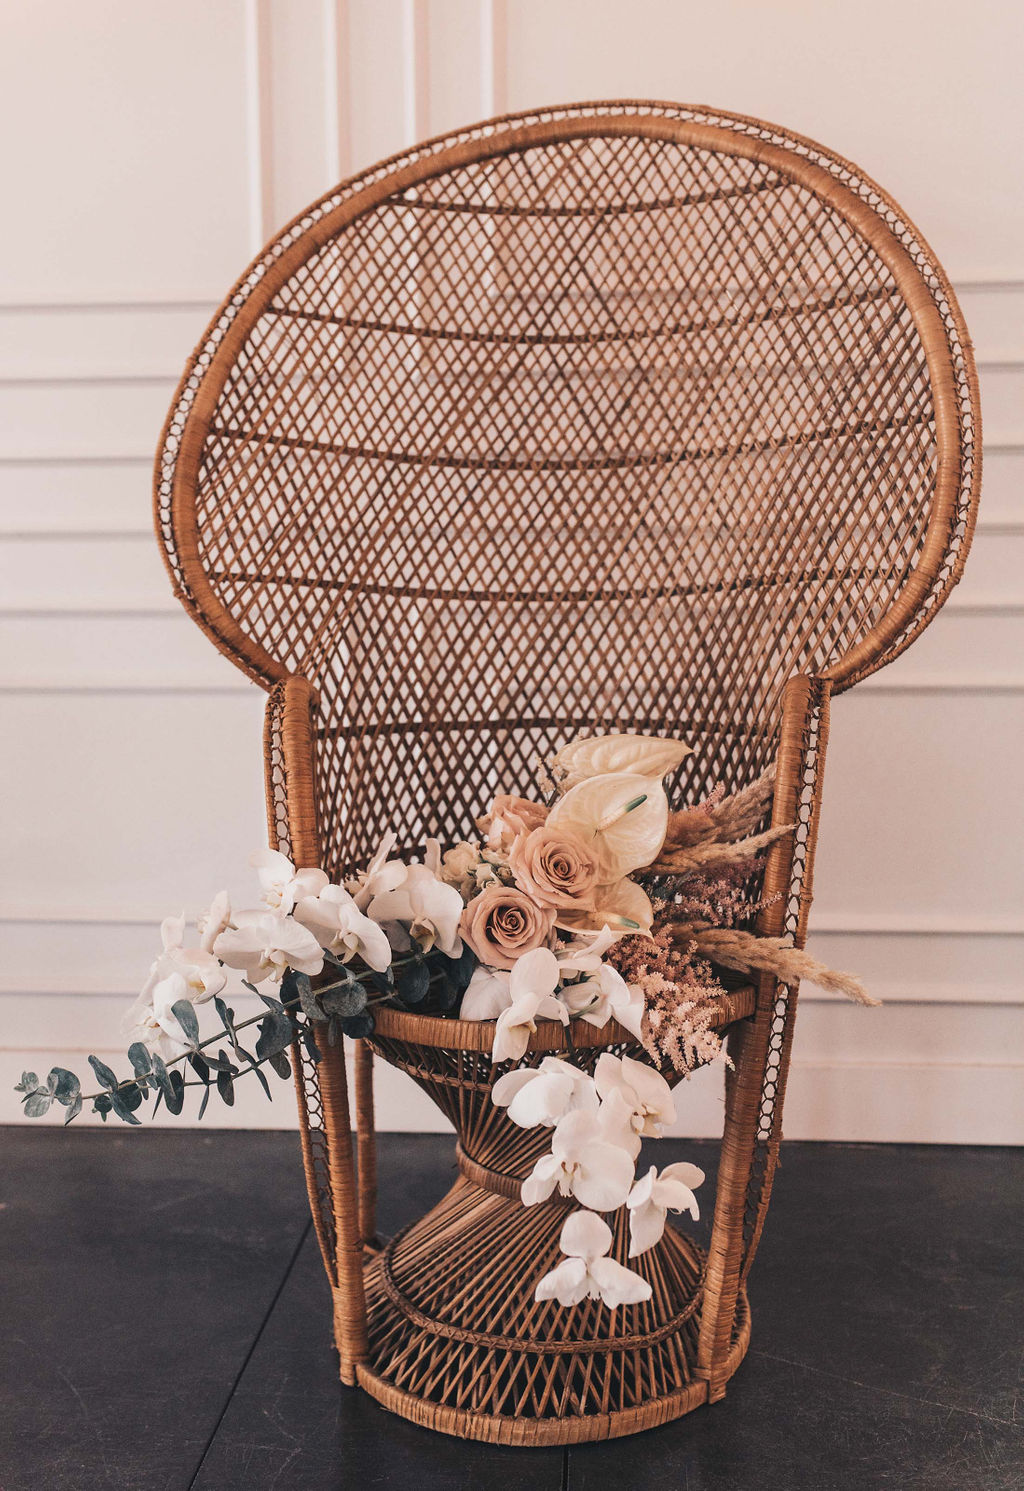 Peacock Chair - Perfect for Bridal Showers and Baby Showers